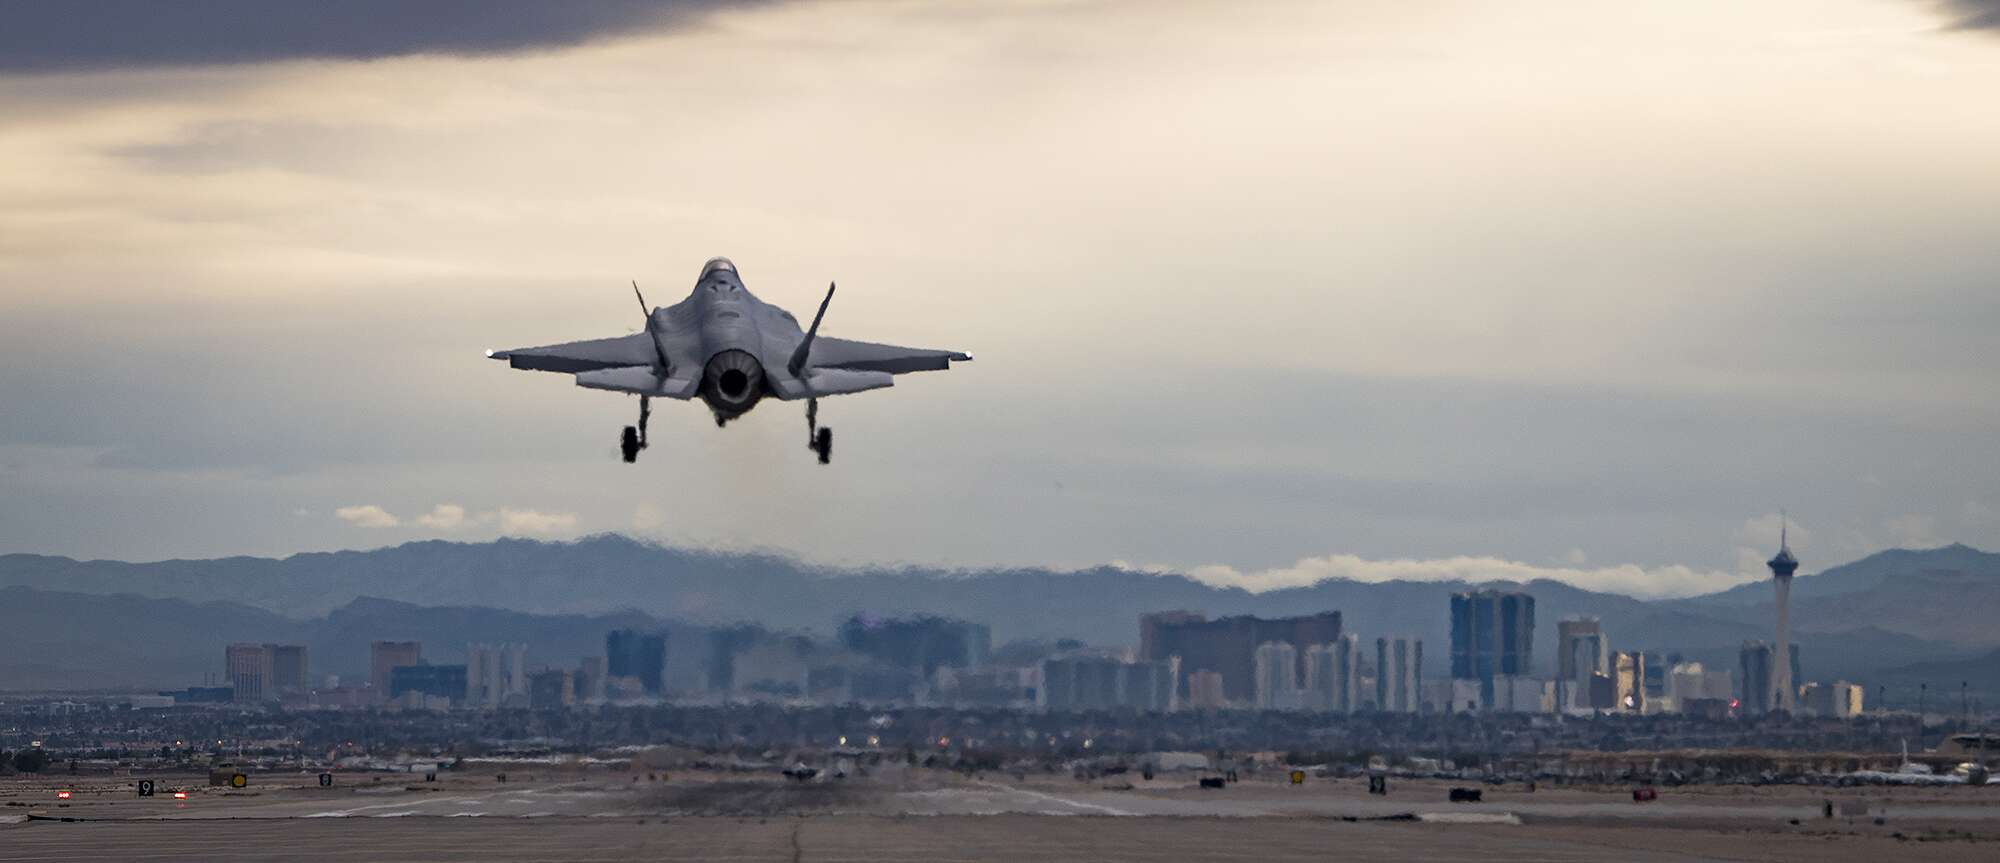 The Air Forces Elite Weapons School Has Given F 35 A New Rc Plane Sound System Mr V4 Multi Engine Pack Usaf Airman 1st Class Andrew Sarver